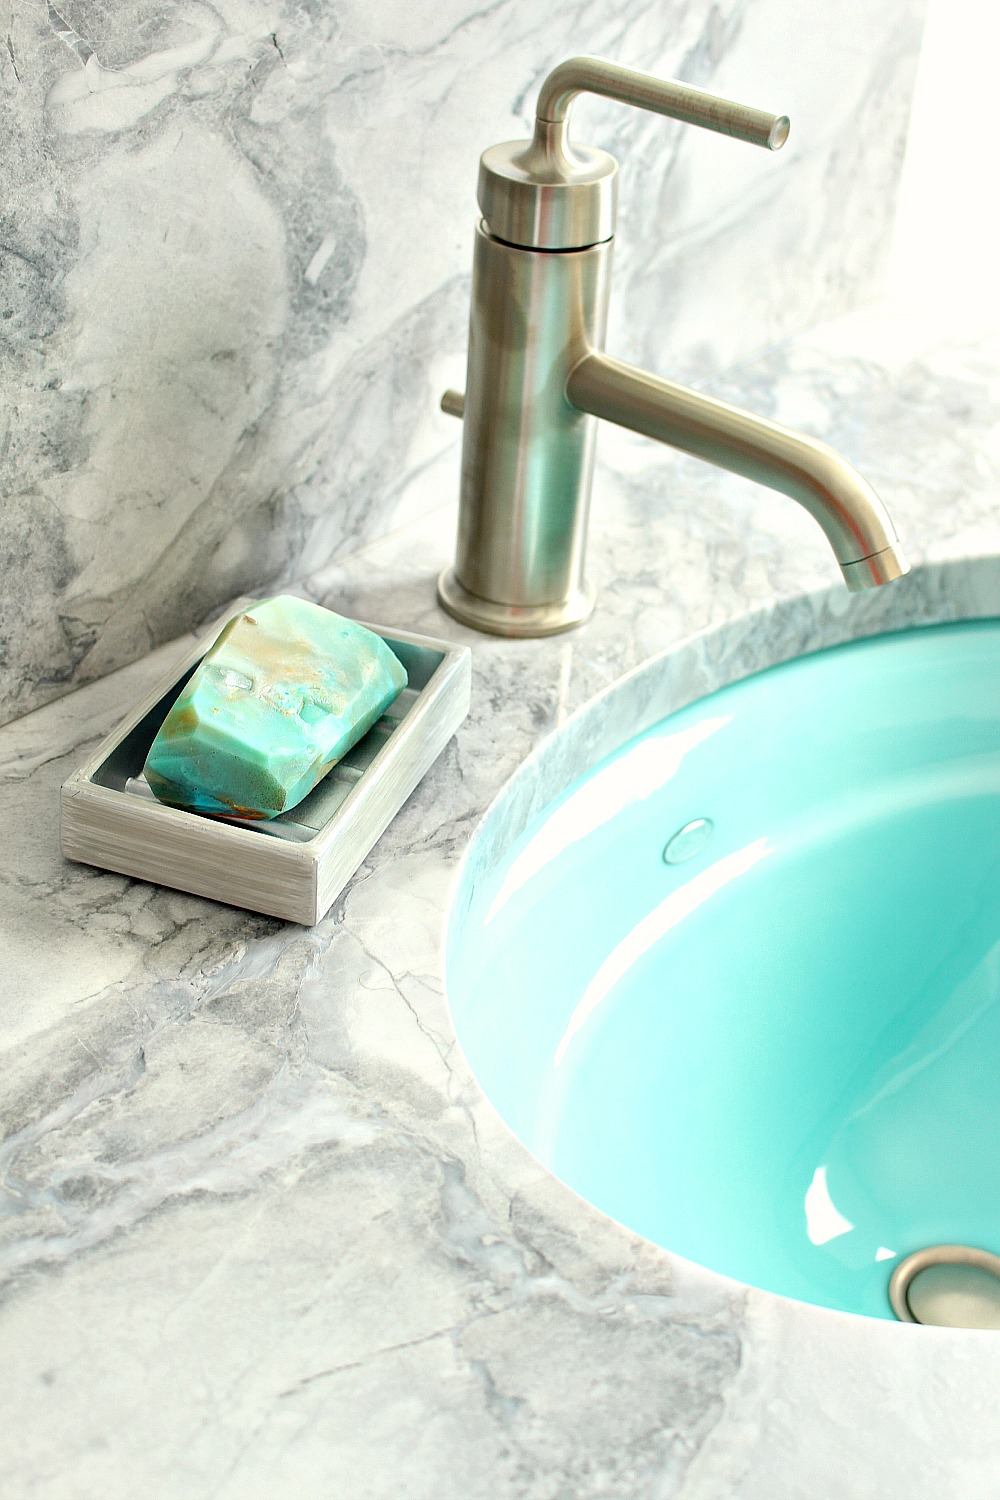 DIY Gem + Mineral Shaped Soap | Make Your Own Melt + Pour Soap Rocks